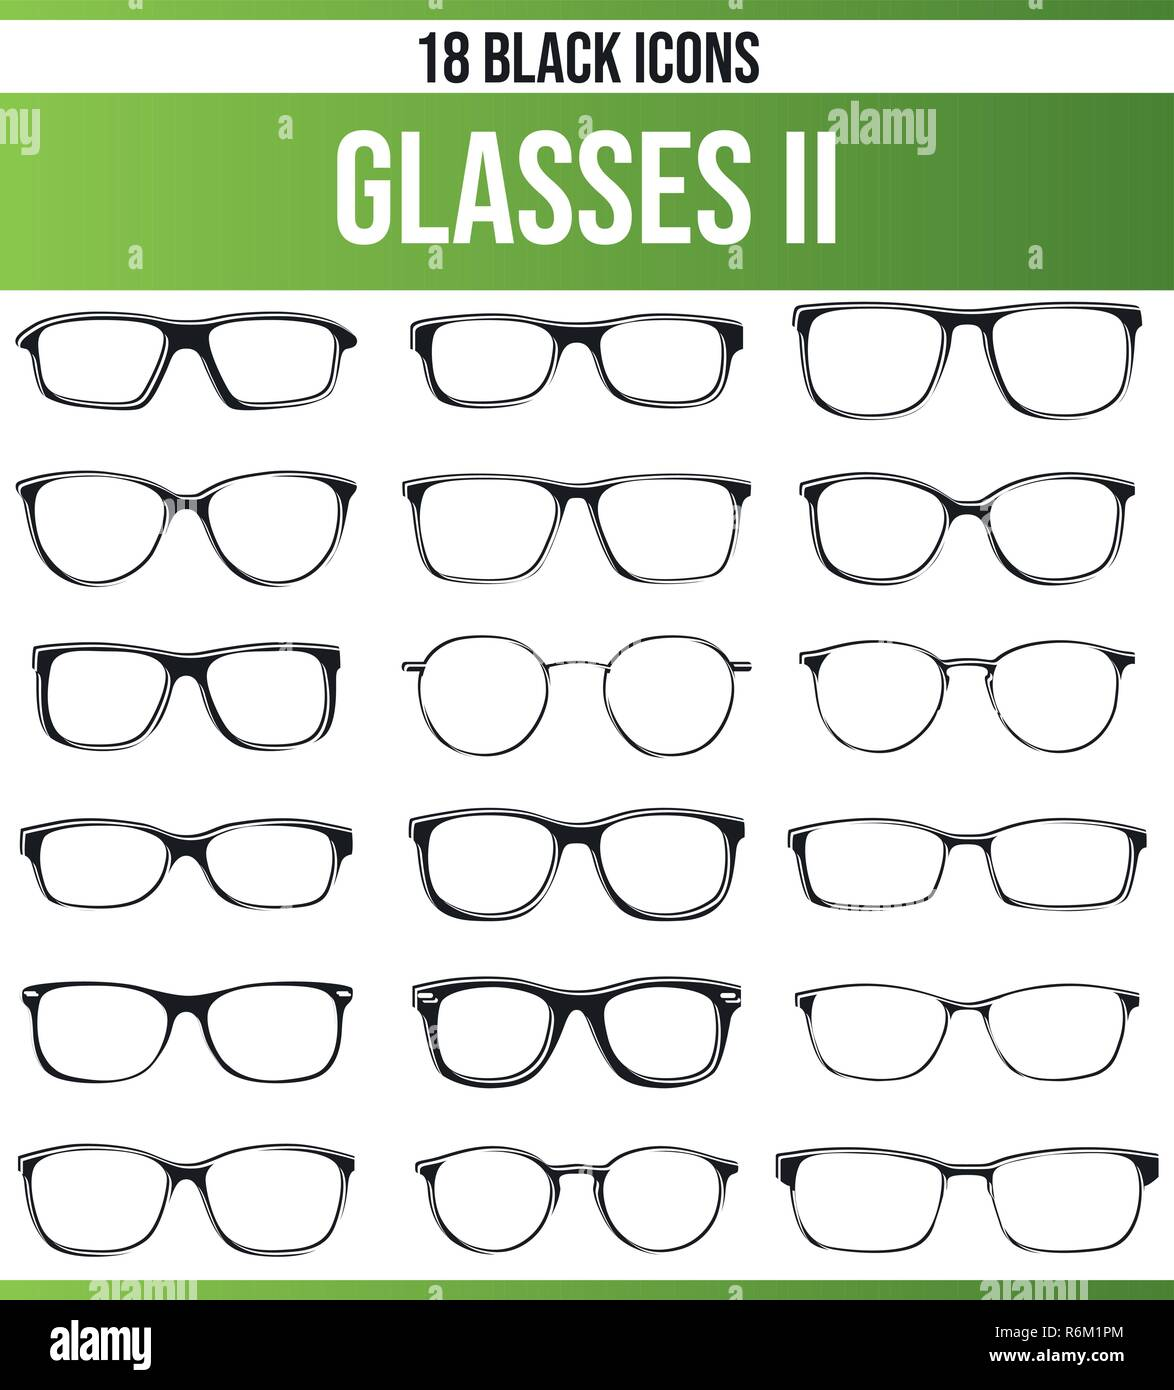 Black pictograms / icons on glasses. This icon set is perfect for creative people and designers who need the topic glasses in their graphic designs. - Stock Vector